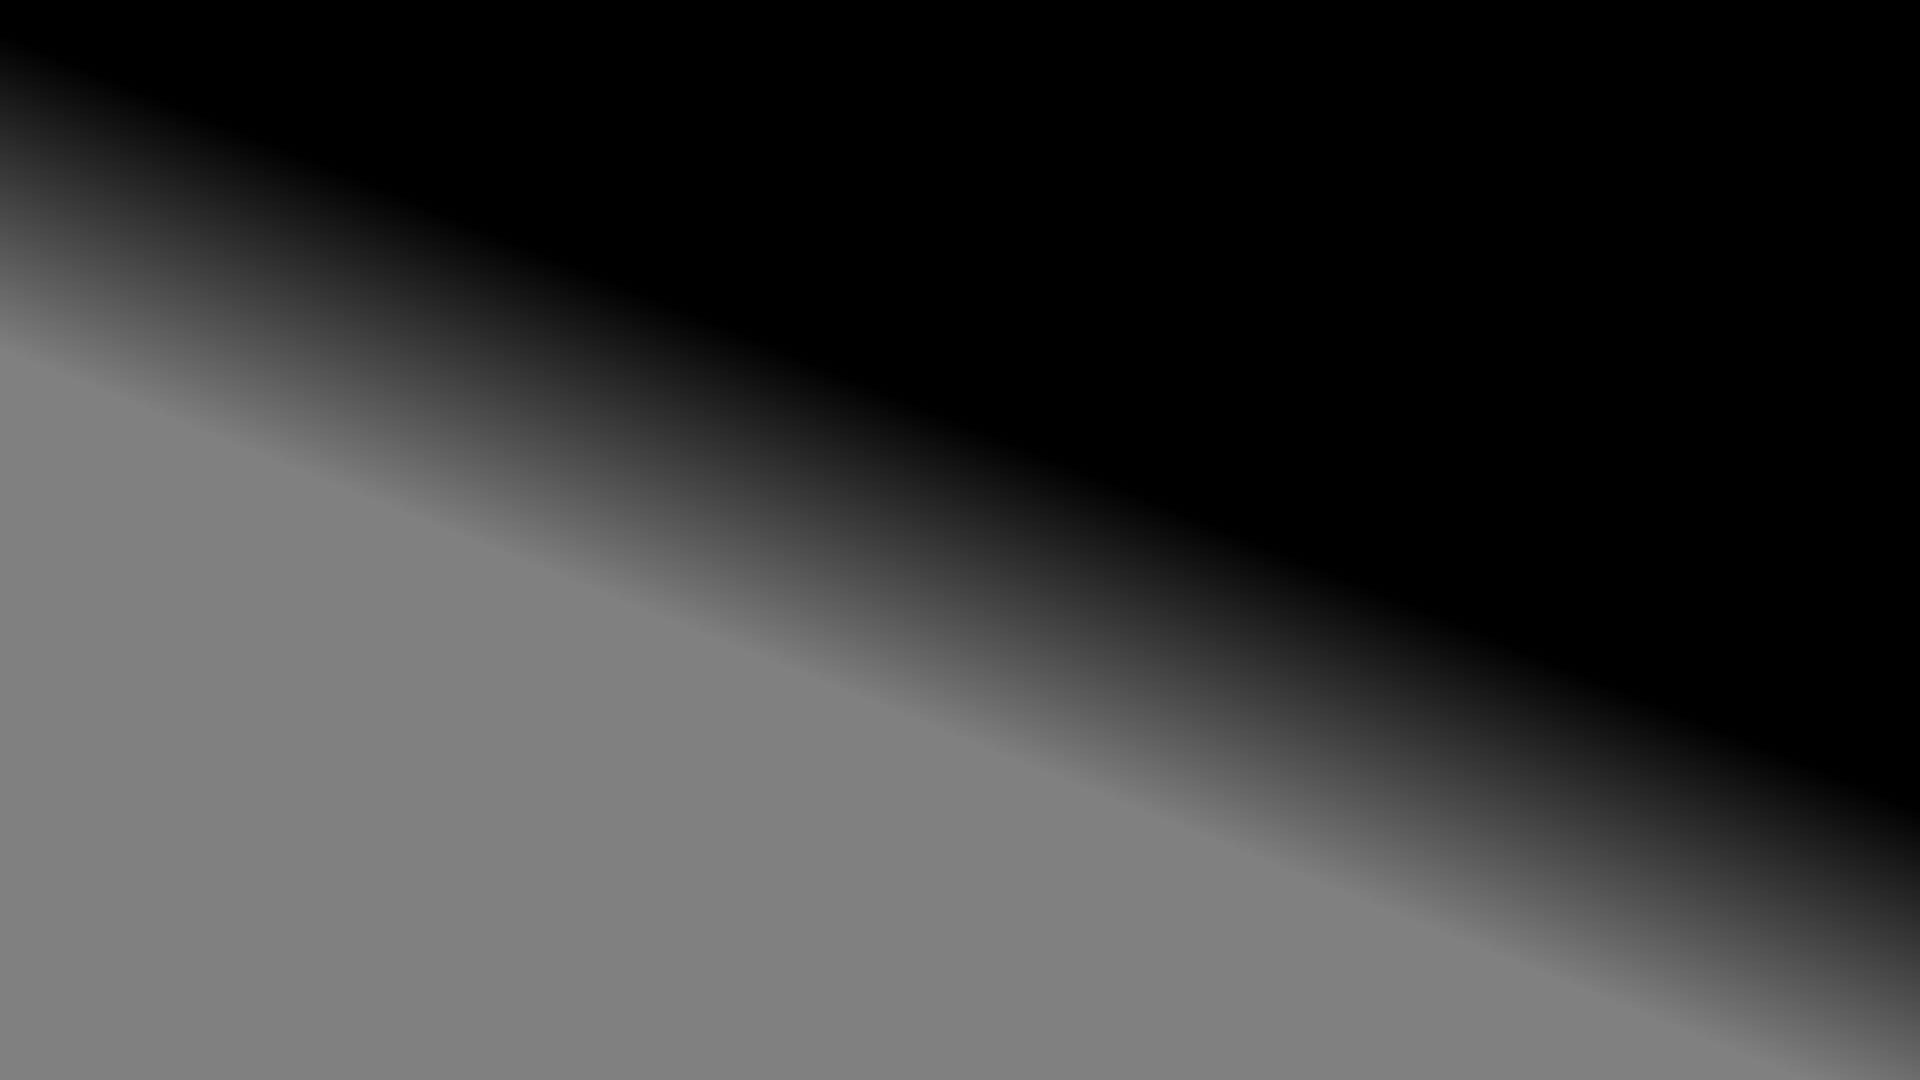 Nothing found for Black and gray gradient desktop wallpaper 1920x1080